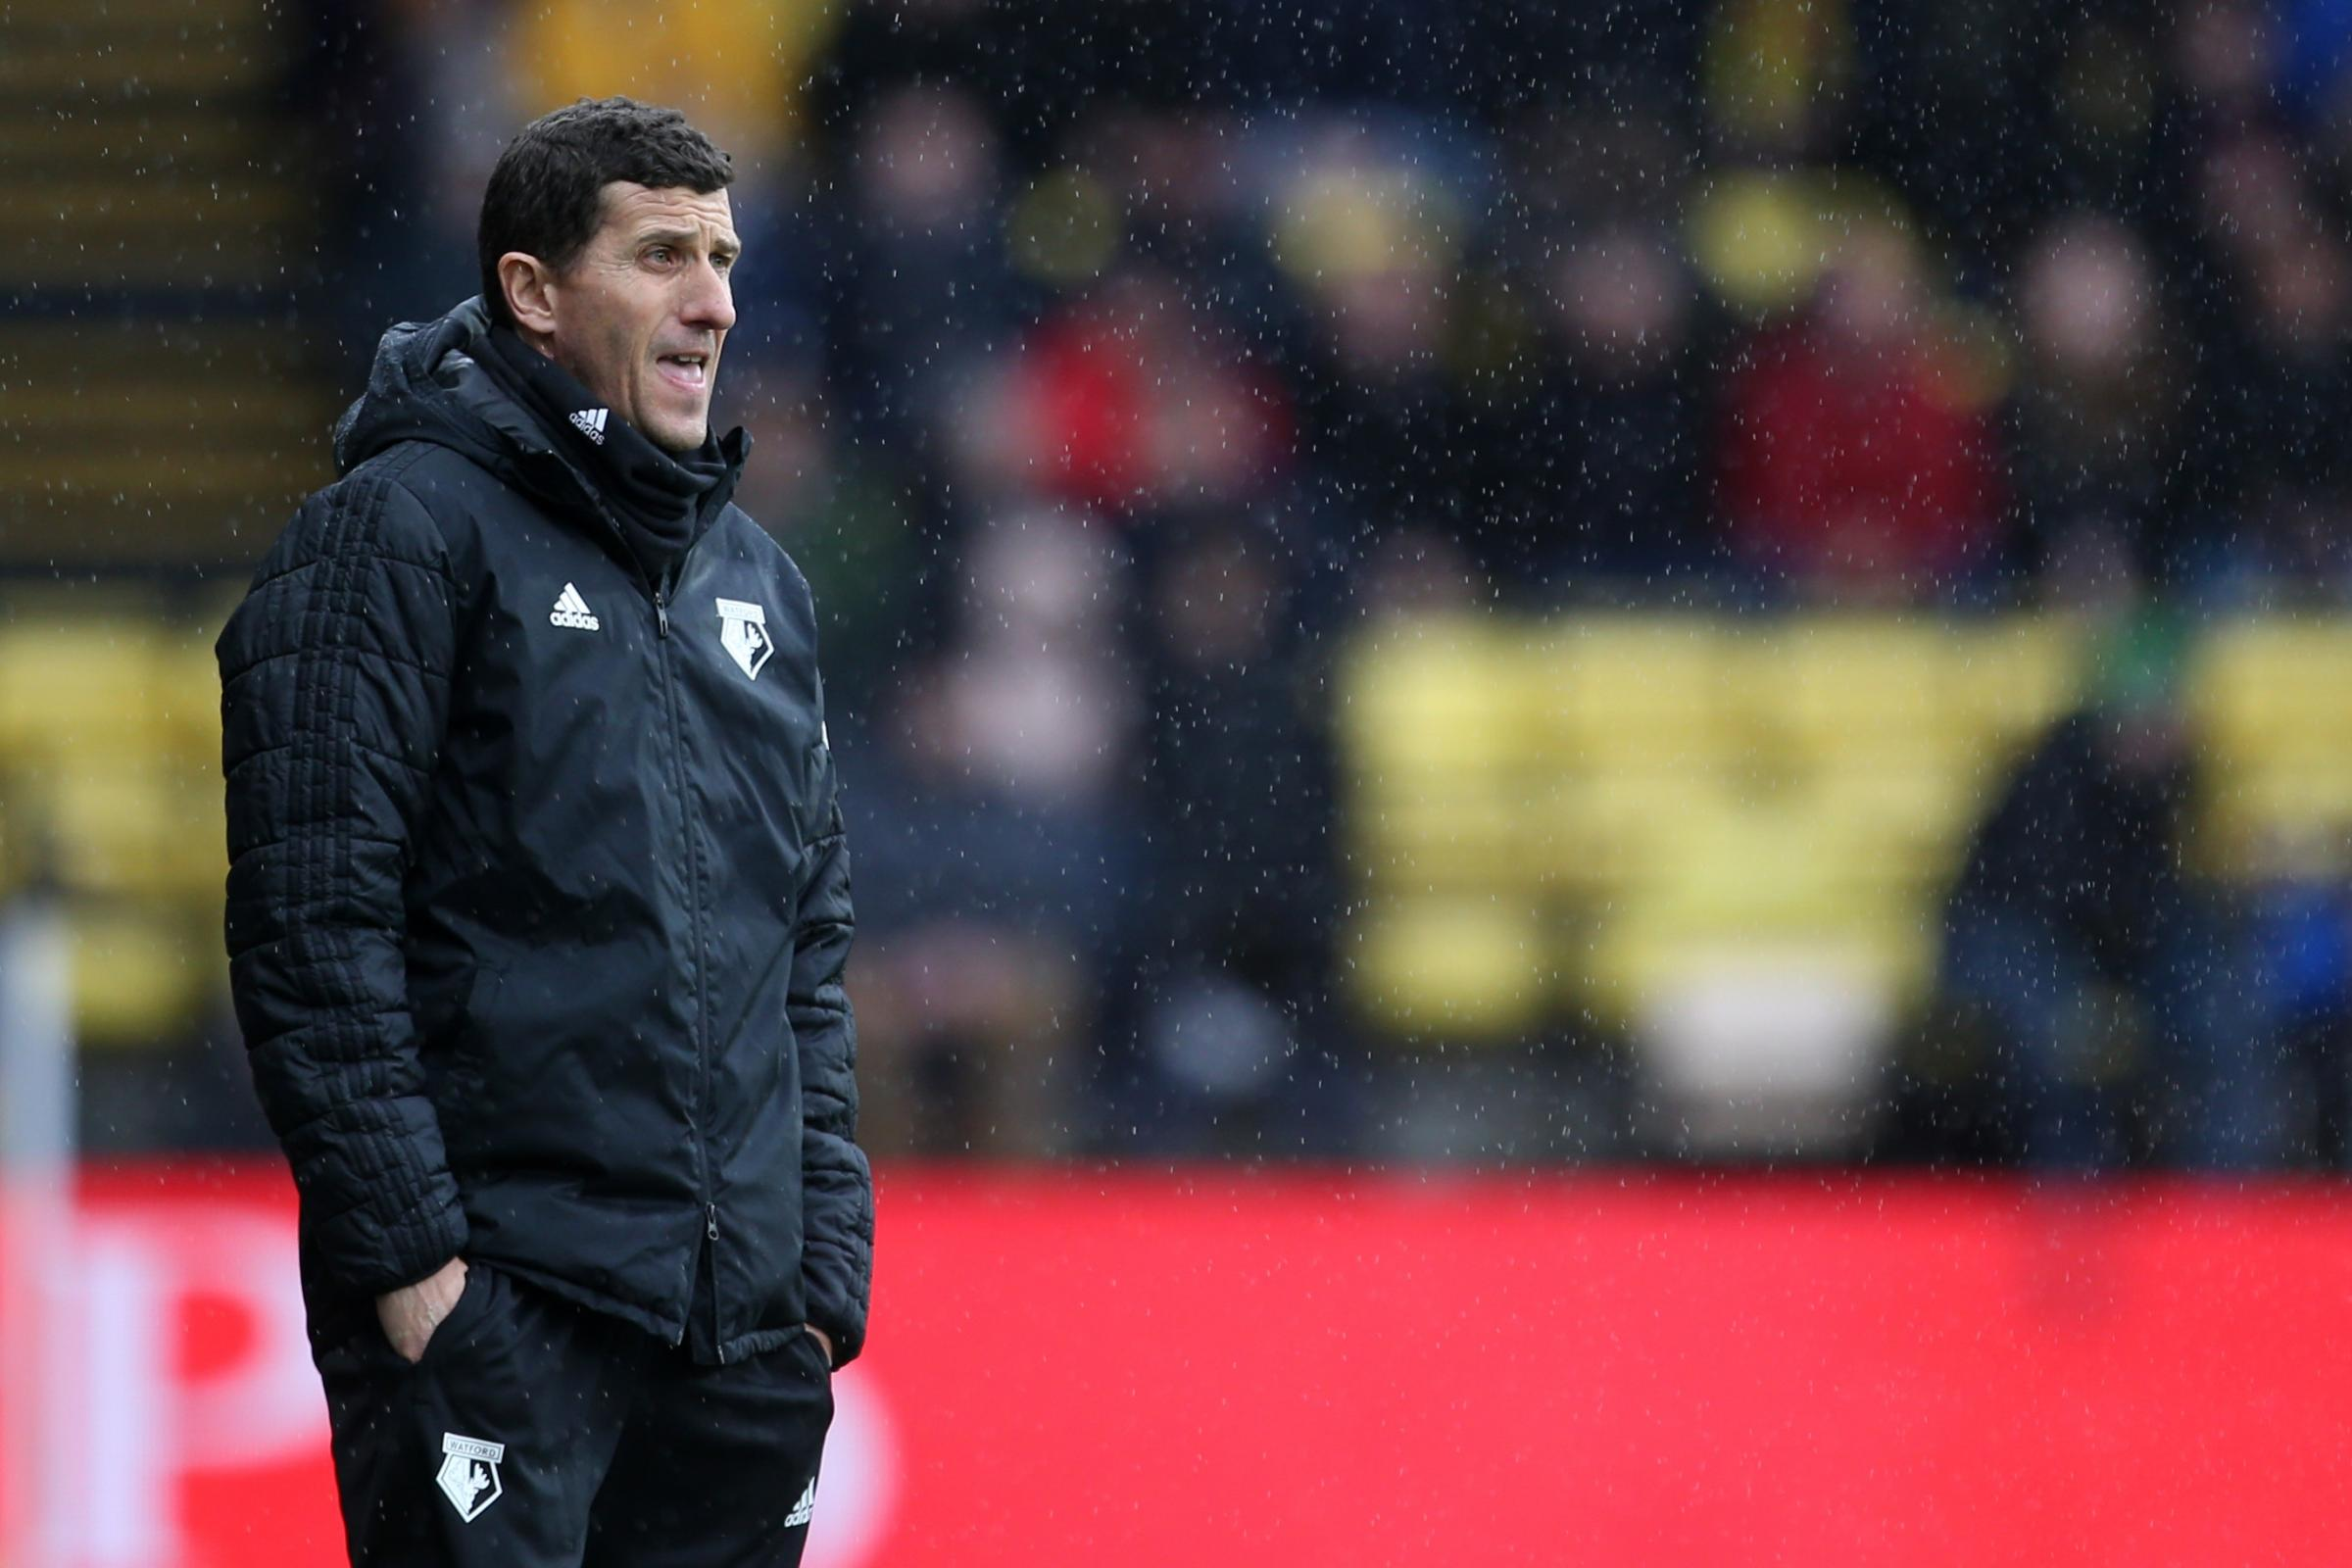 Watford manager Javi Gracia did not agree with the red card for Troy Deeney